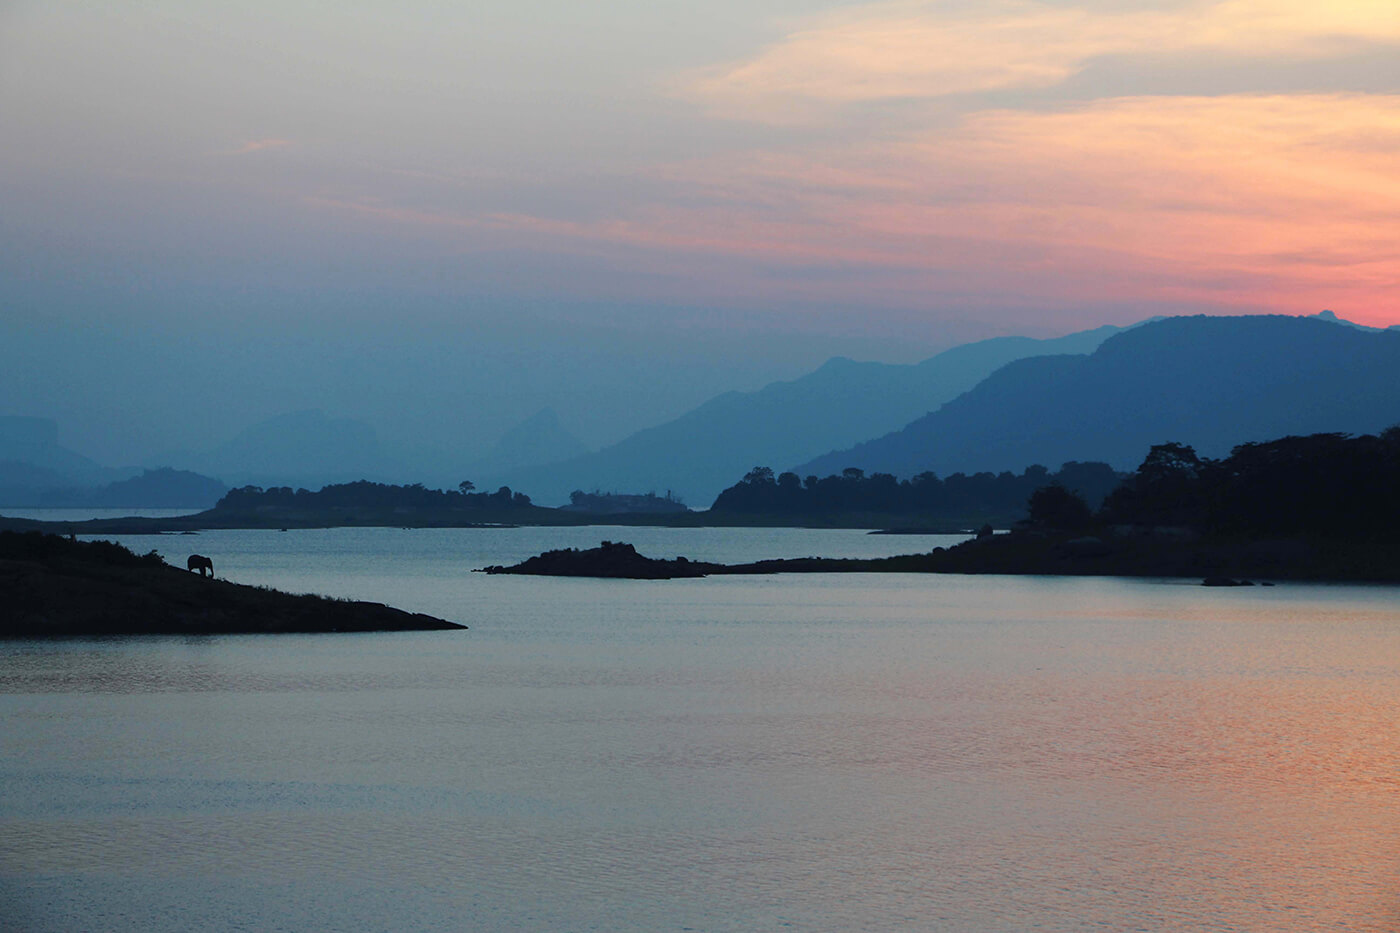 Senanayake Samudra Lake in Sri Lanka